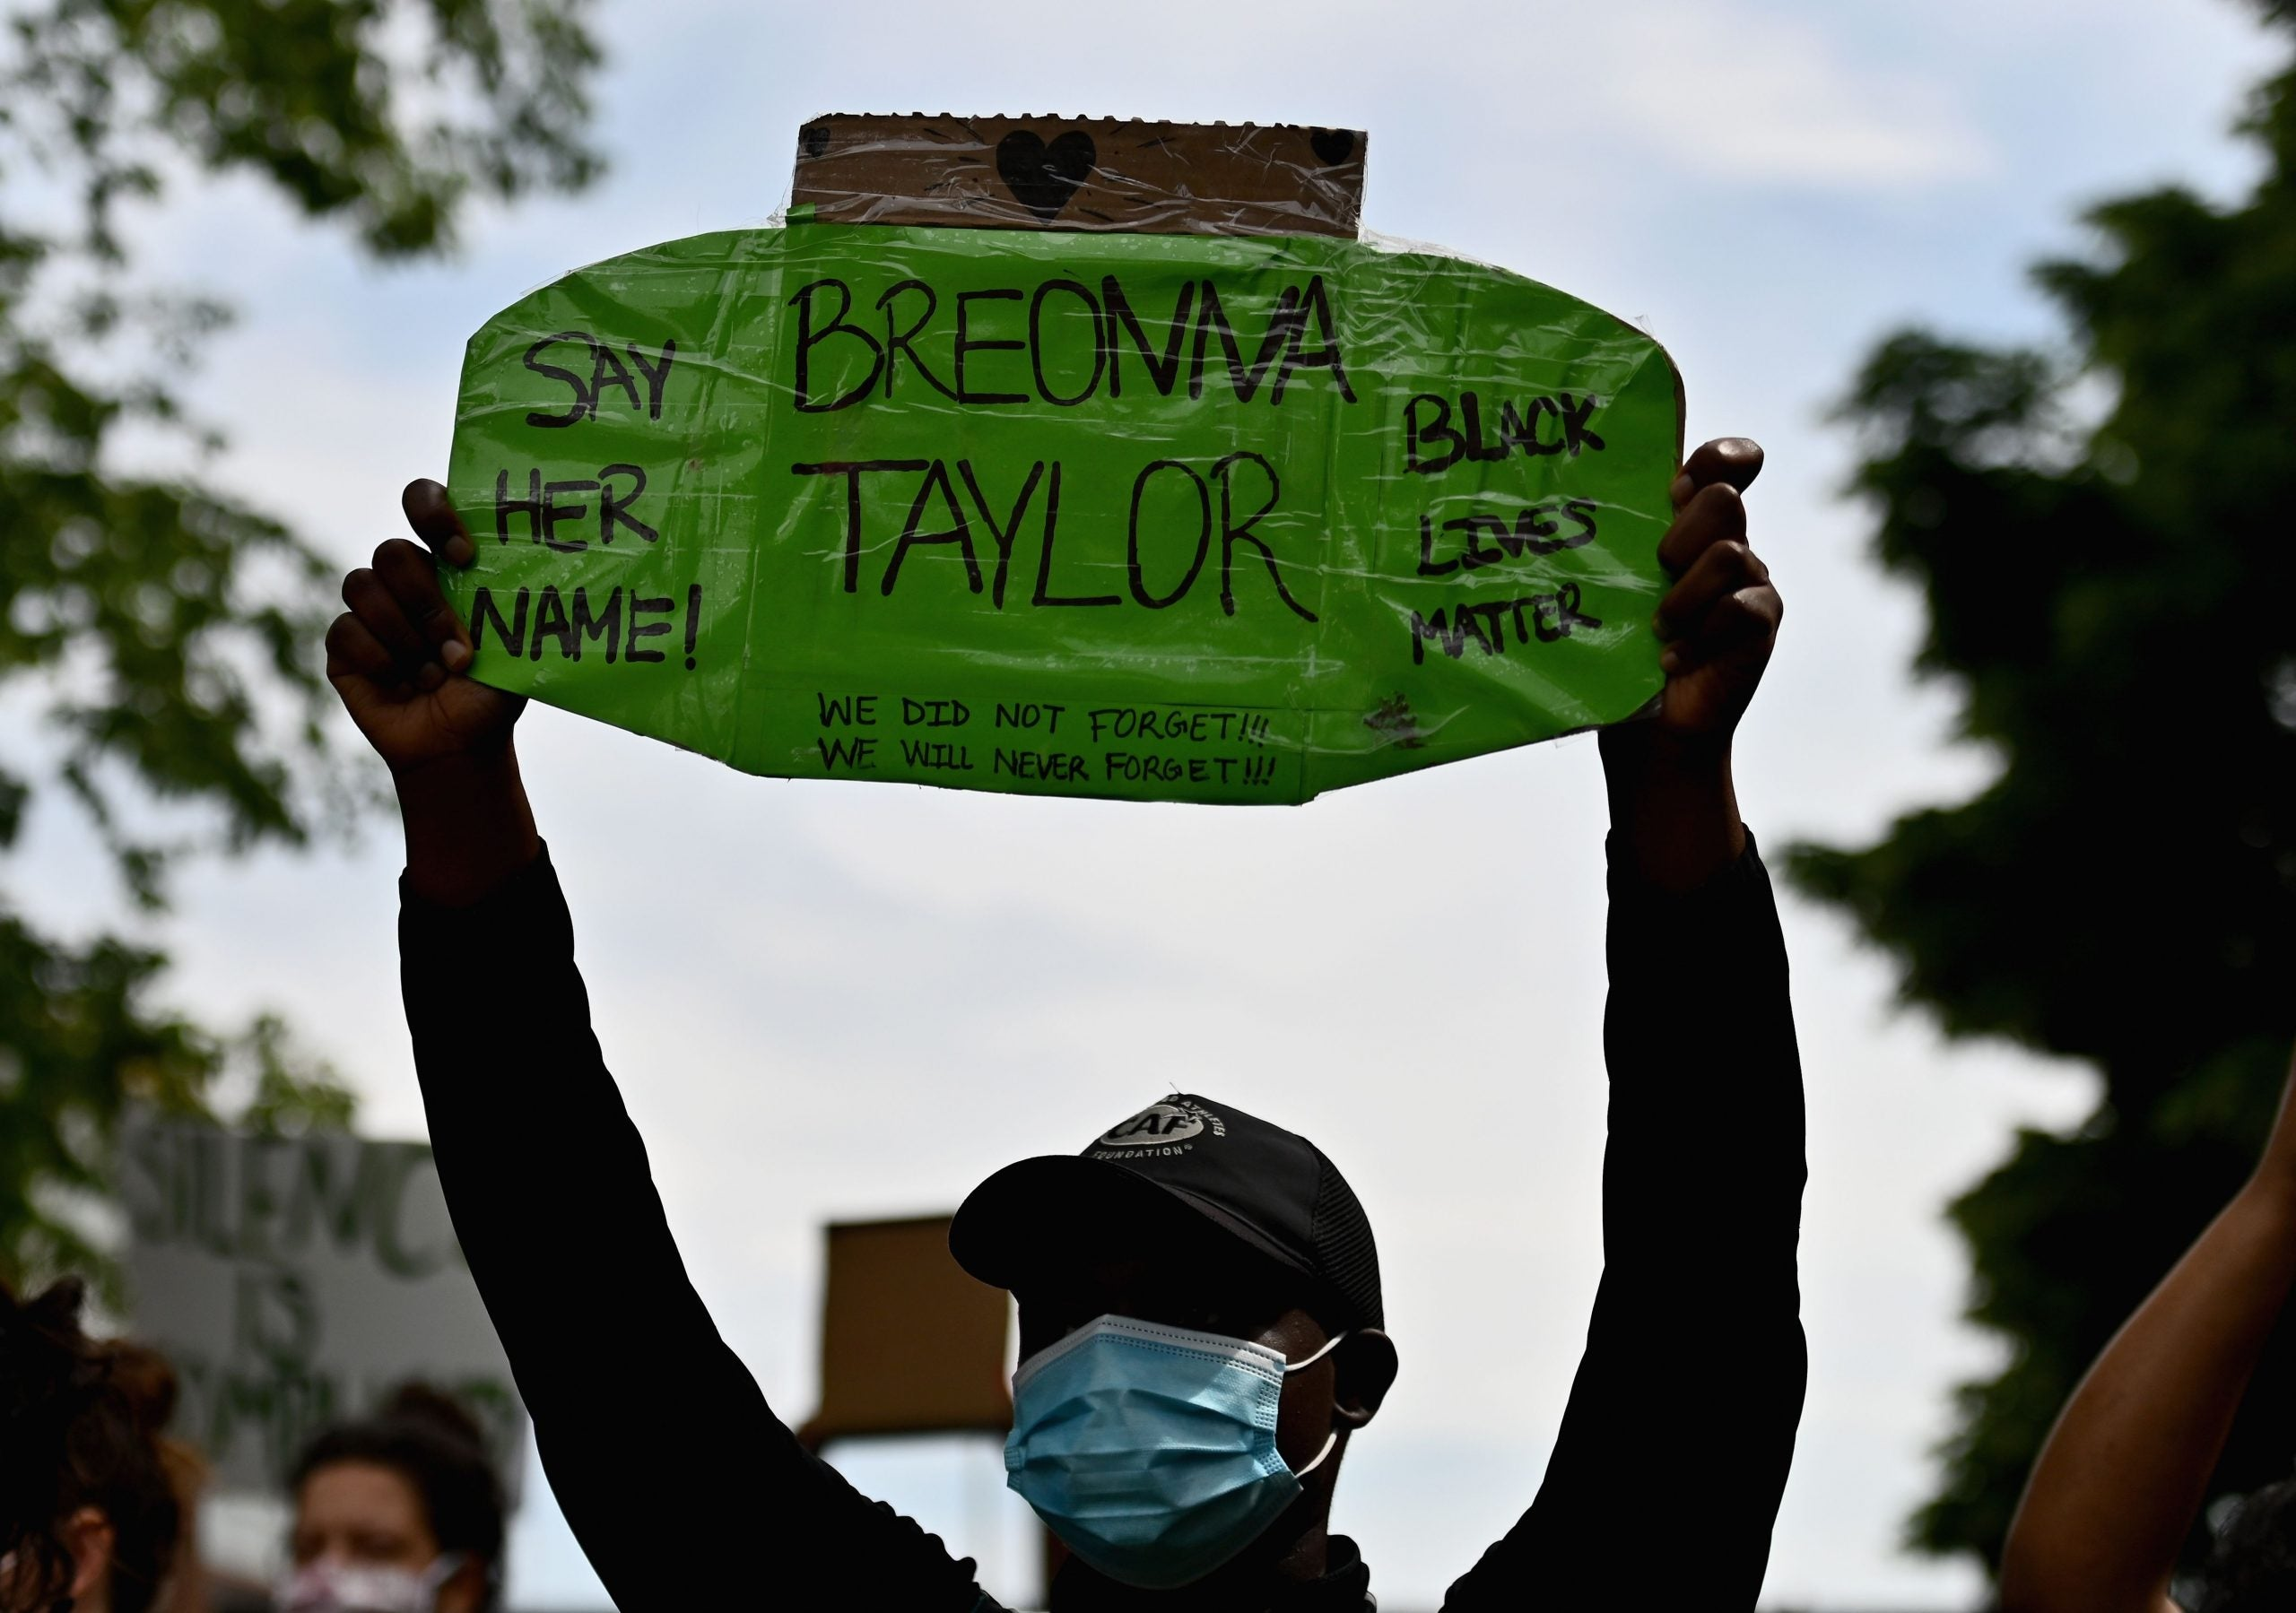 Protester holds sign remembering Breonna Taylor following her death at the hands of Brett Hankinson and two additional officers